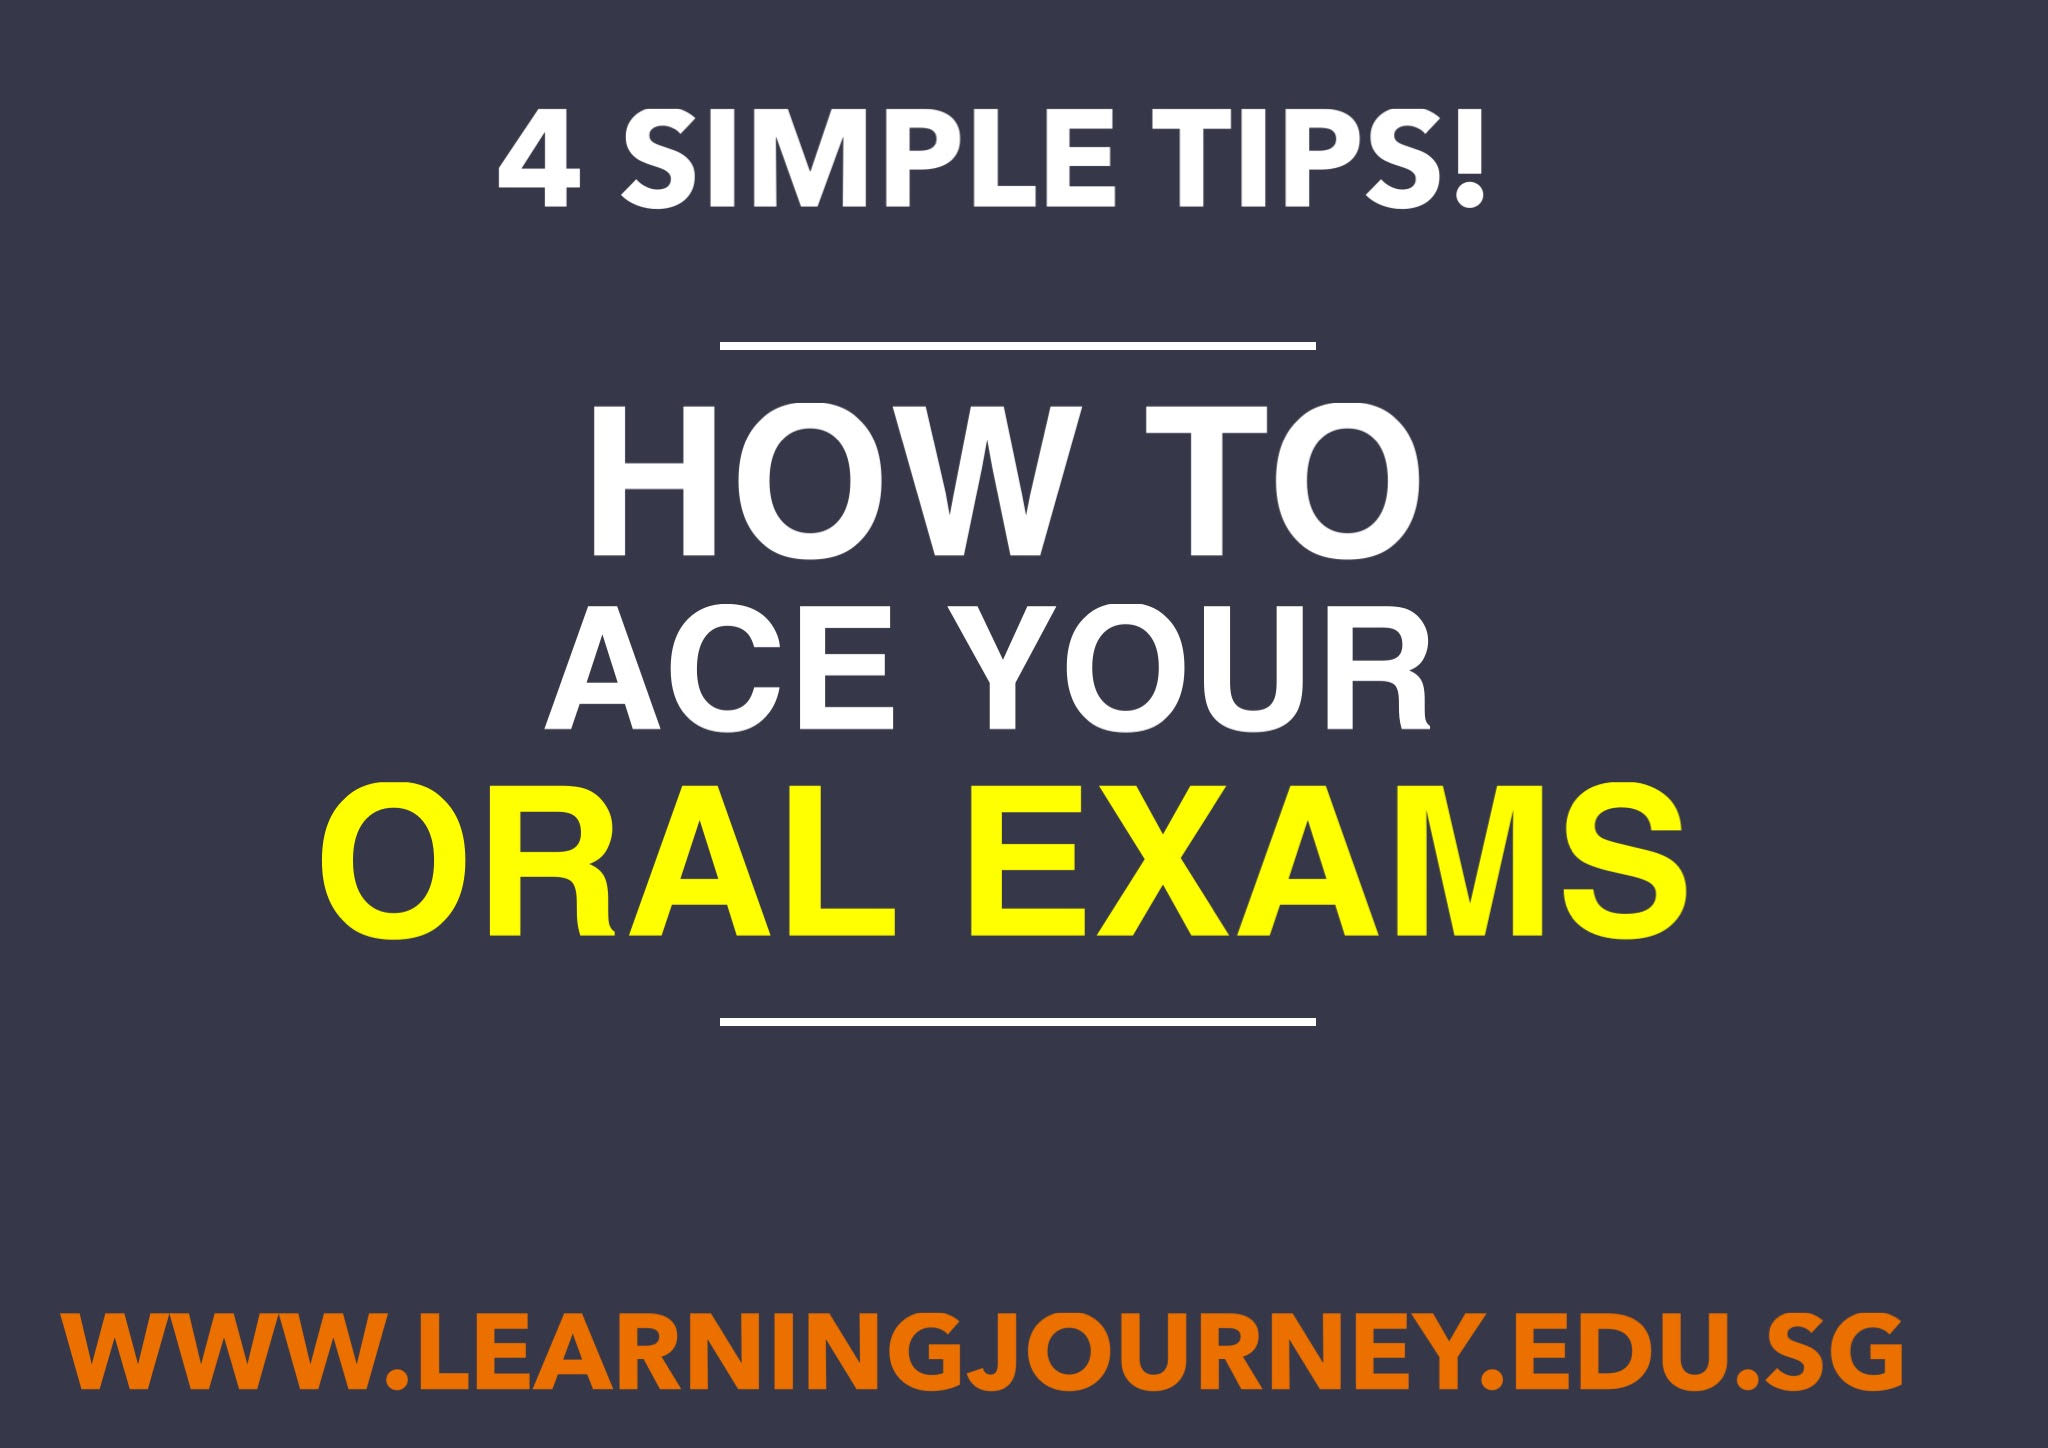 4 Tips to Ace Your Oral Exams!